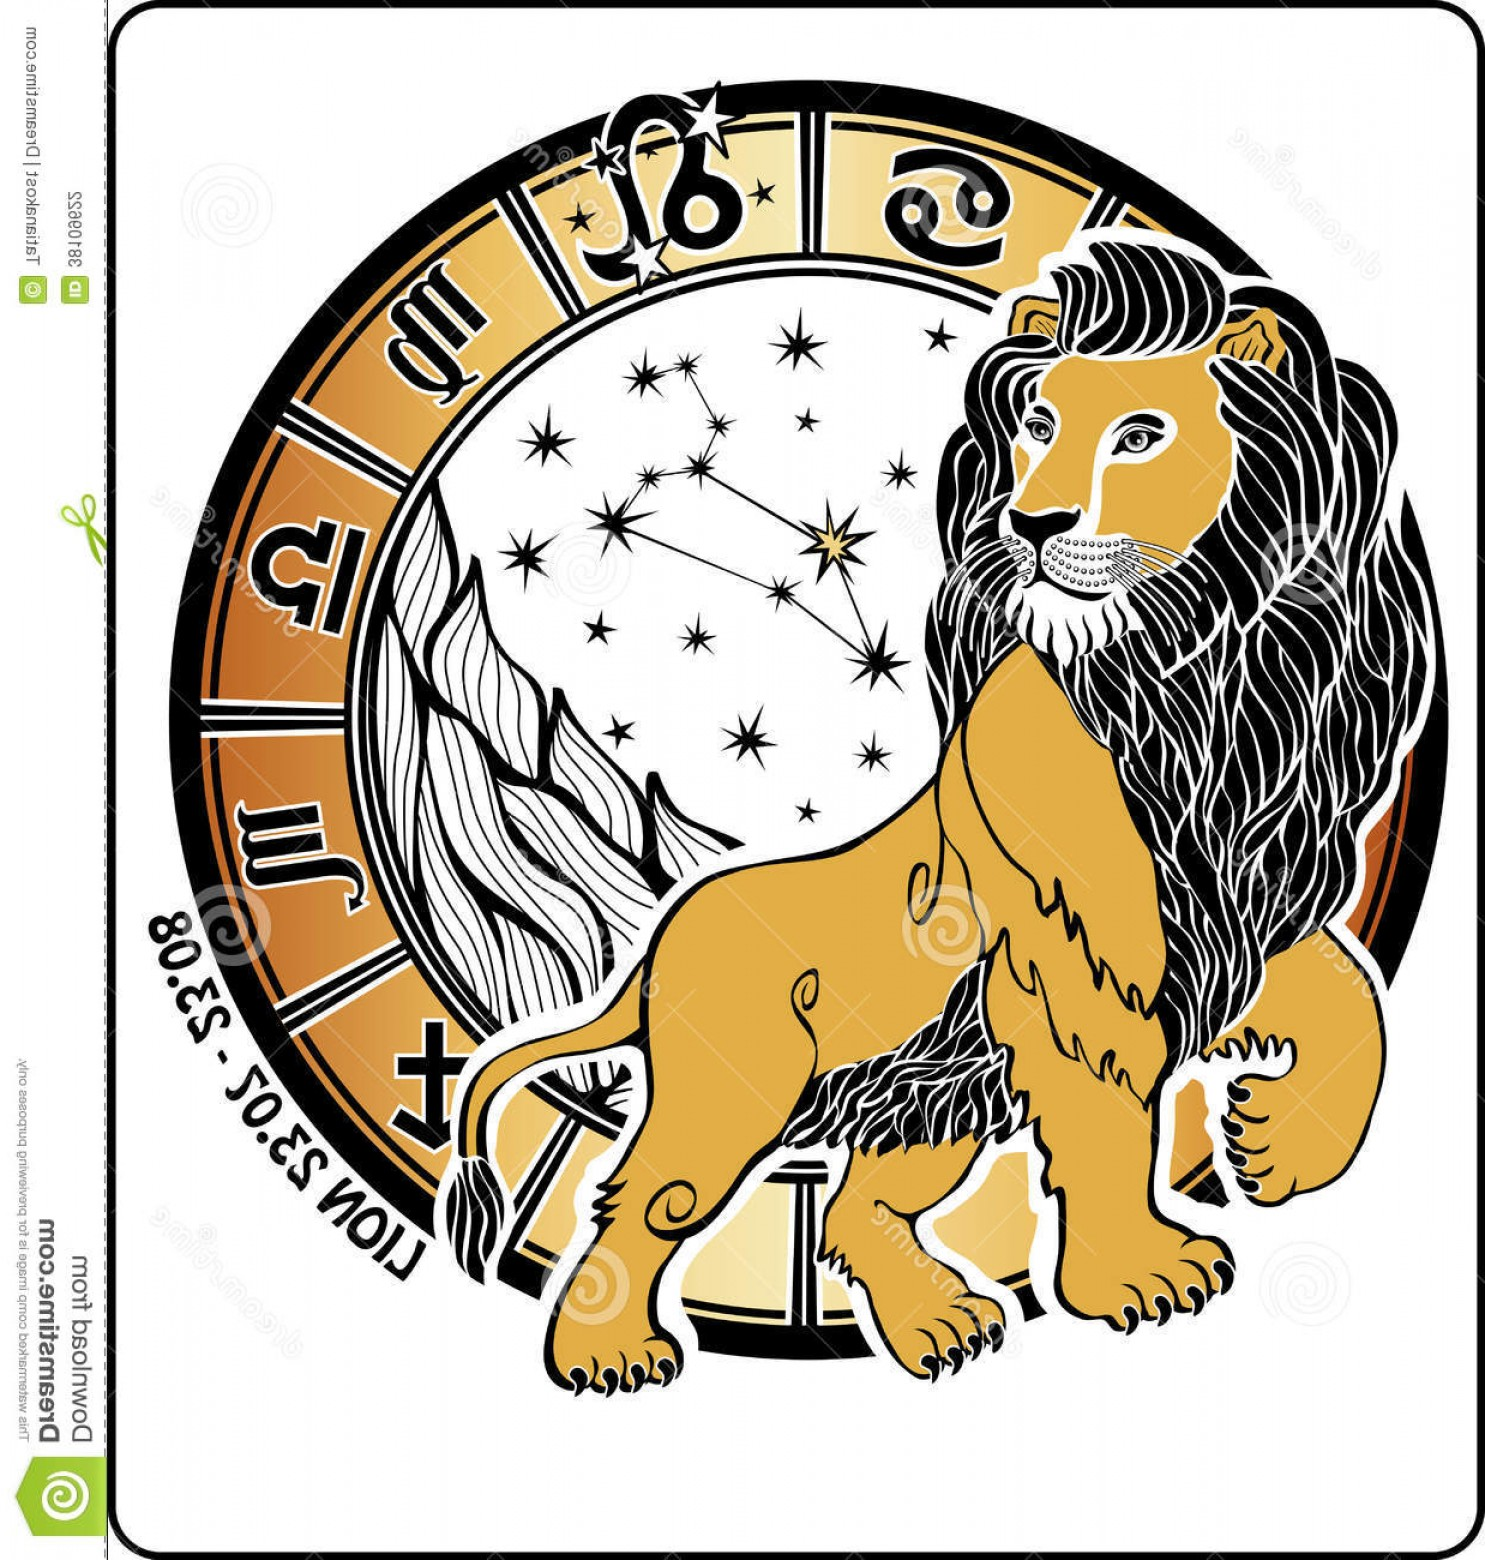 Leo Symbol Zodiac Vector: Stock Photography Leo Zodiac Sign Horoscope Circle Vector Illustrati One Lion Symbols All Signs White Background Graphic Image